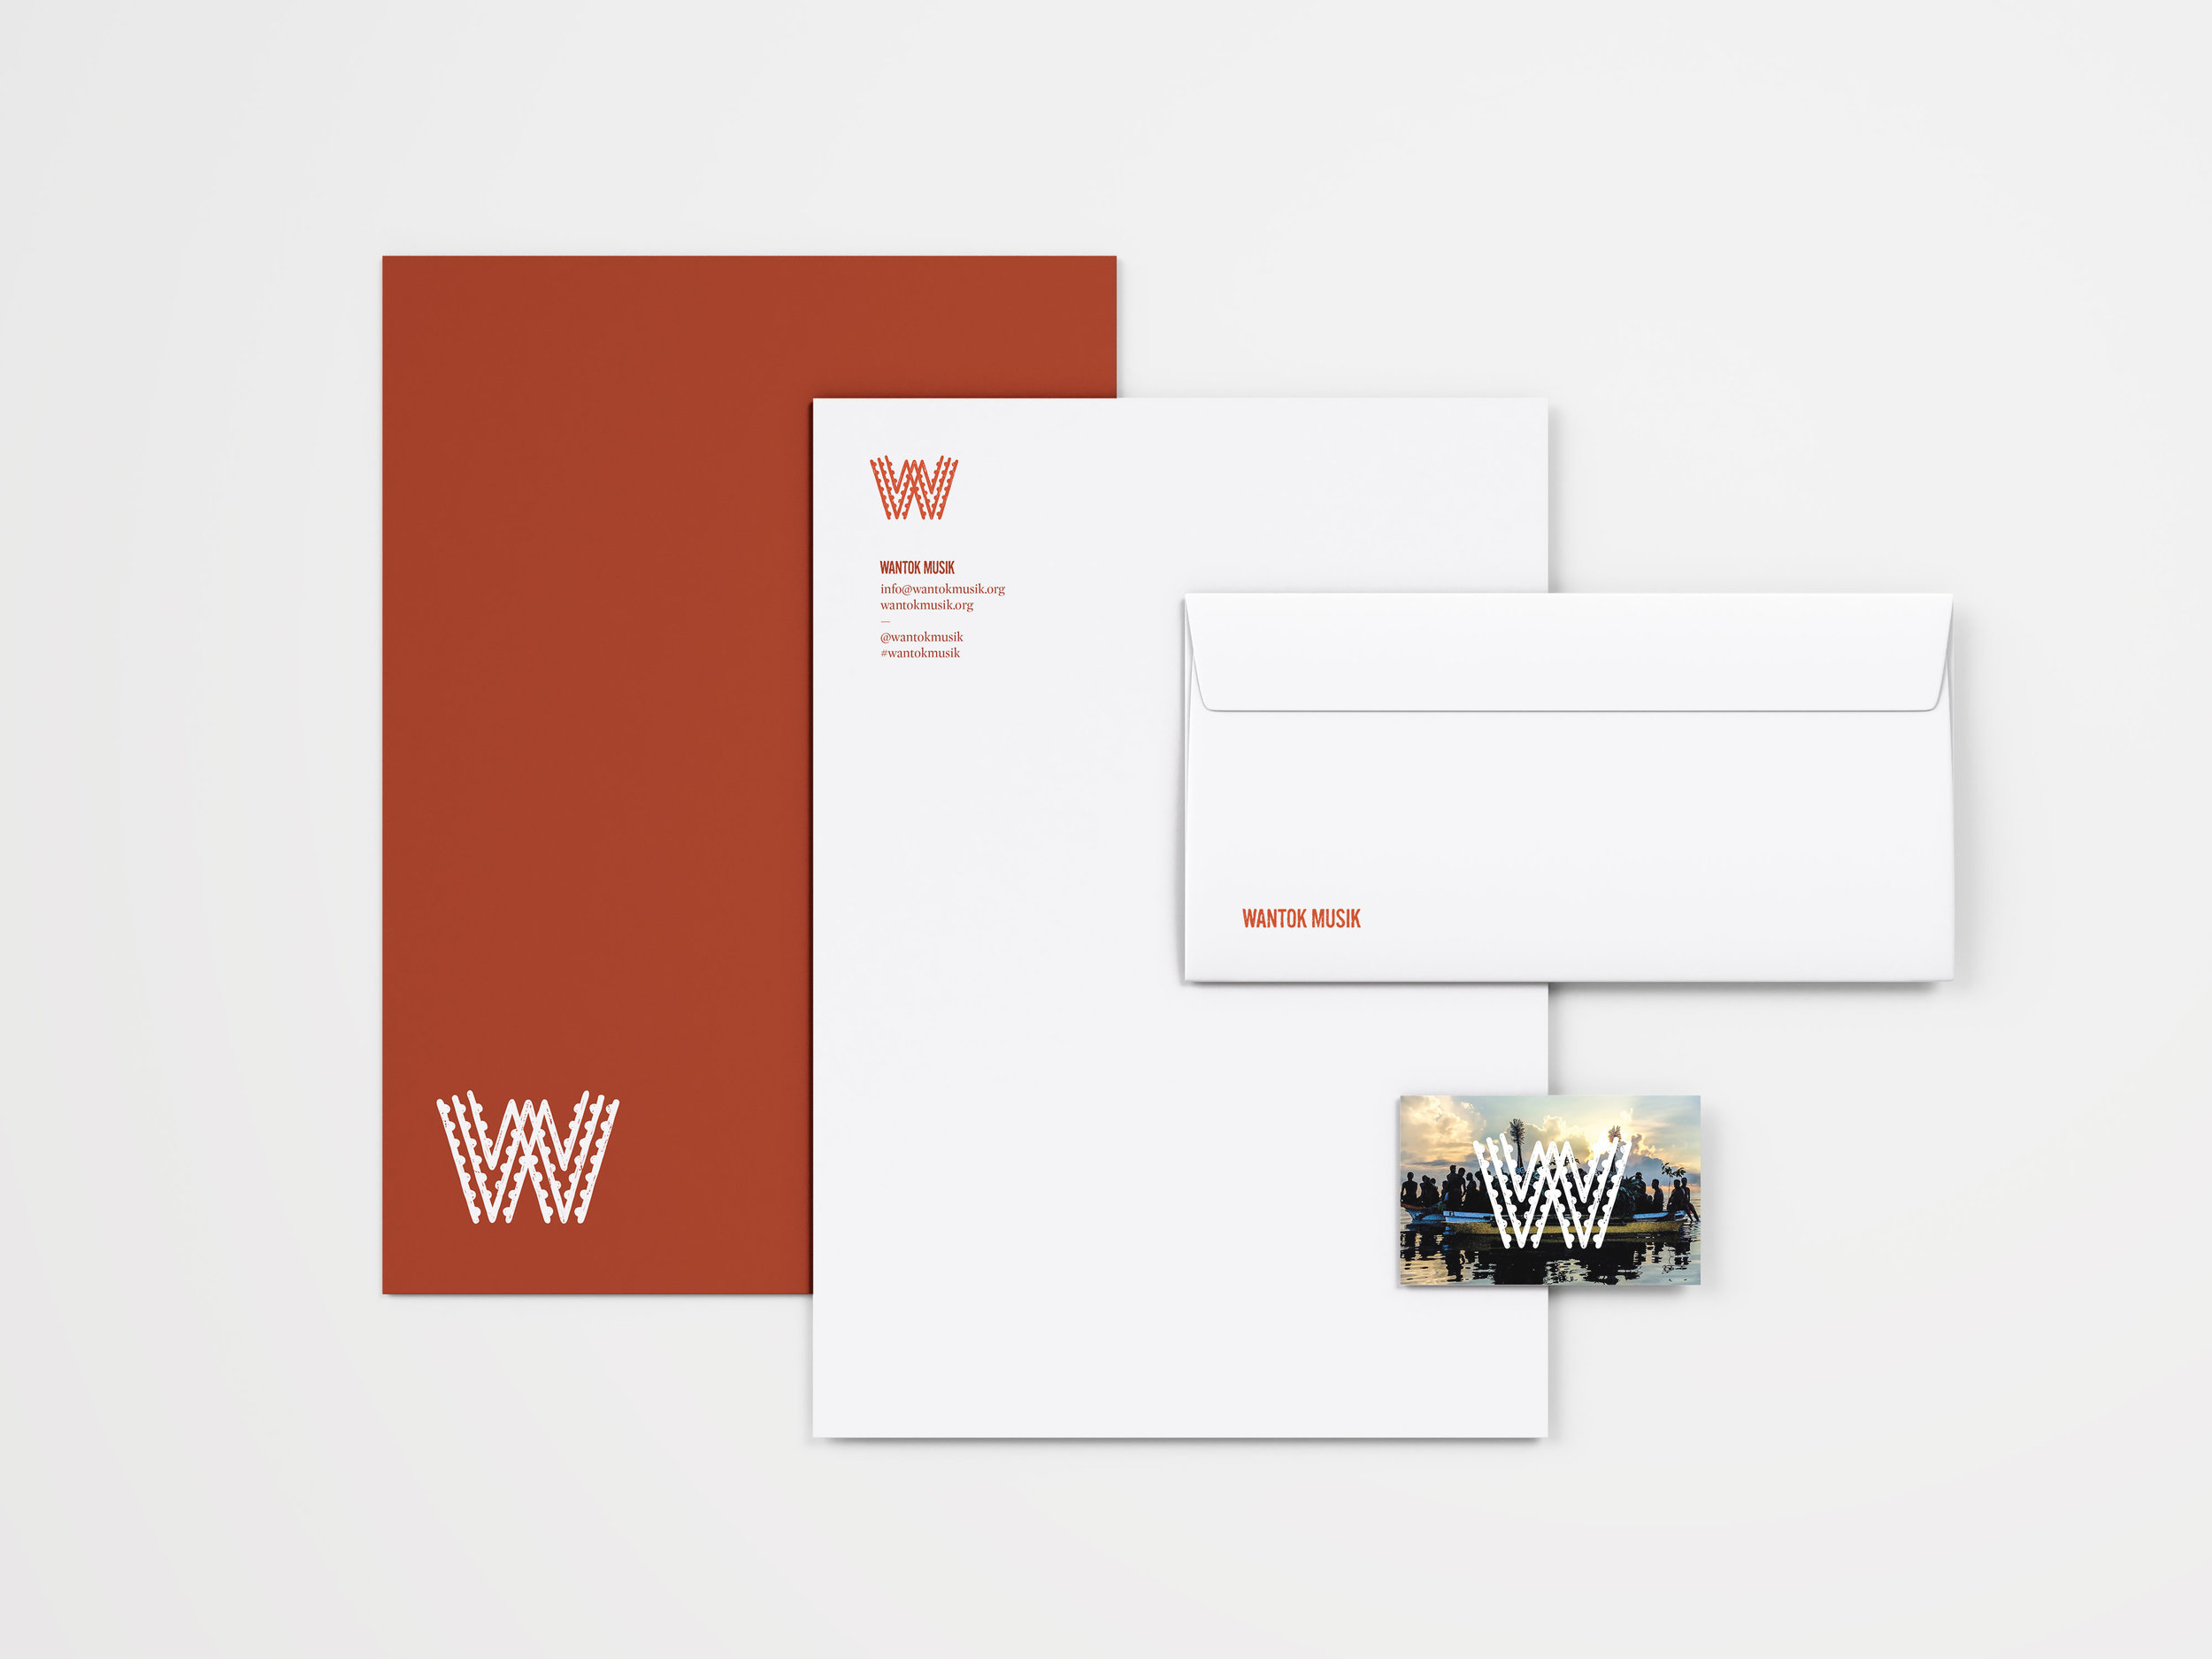 Wantok Musik Collateral, part of the branding project by created by south